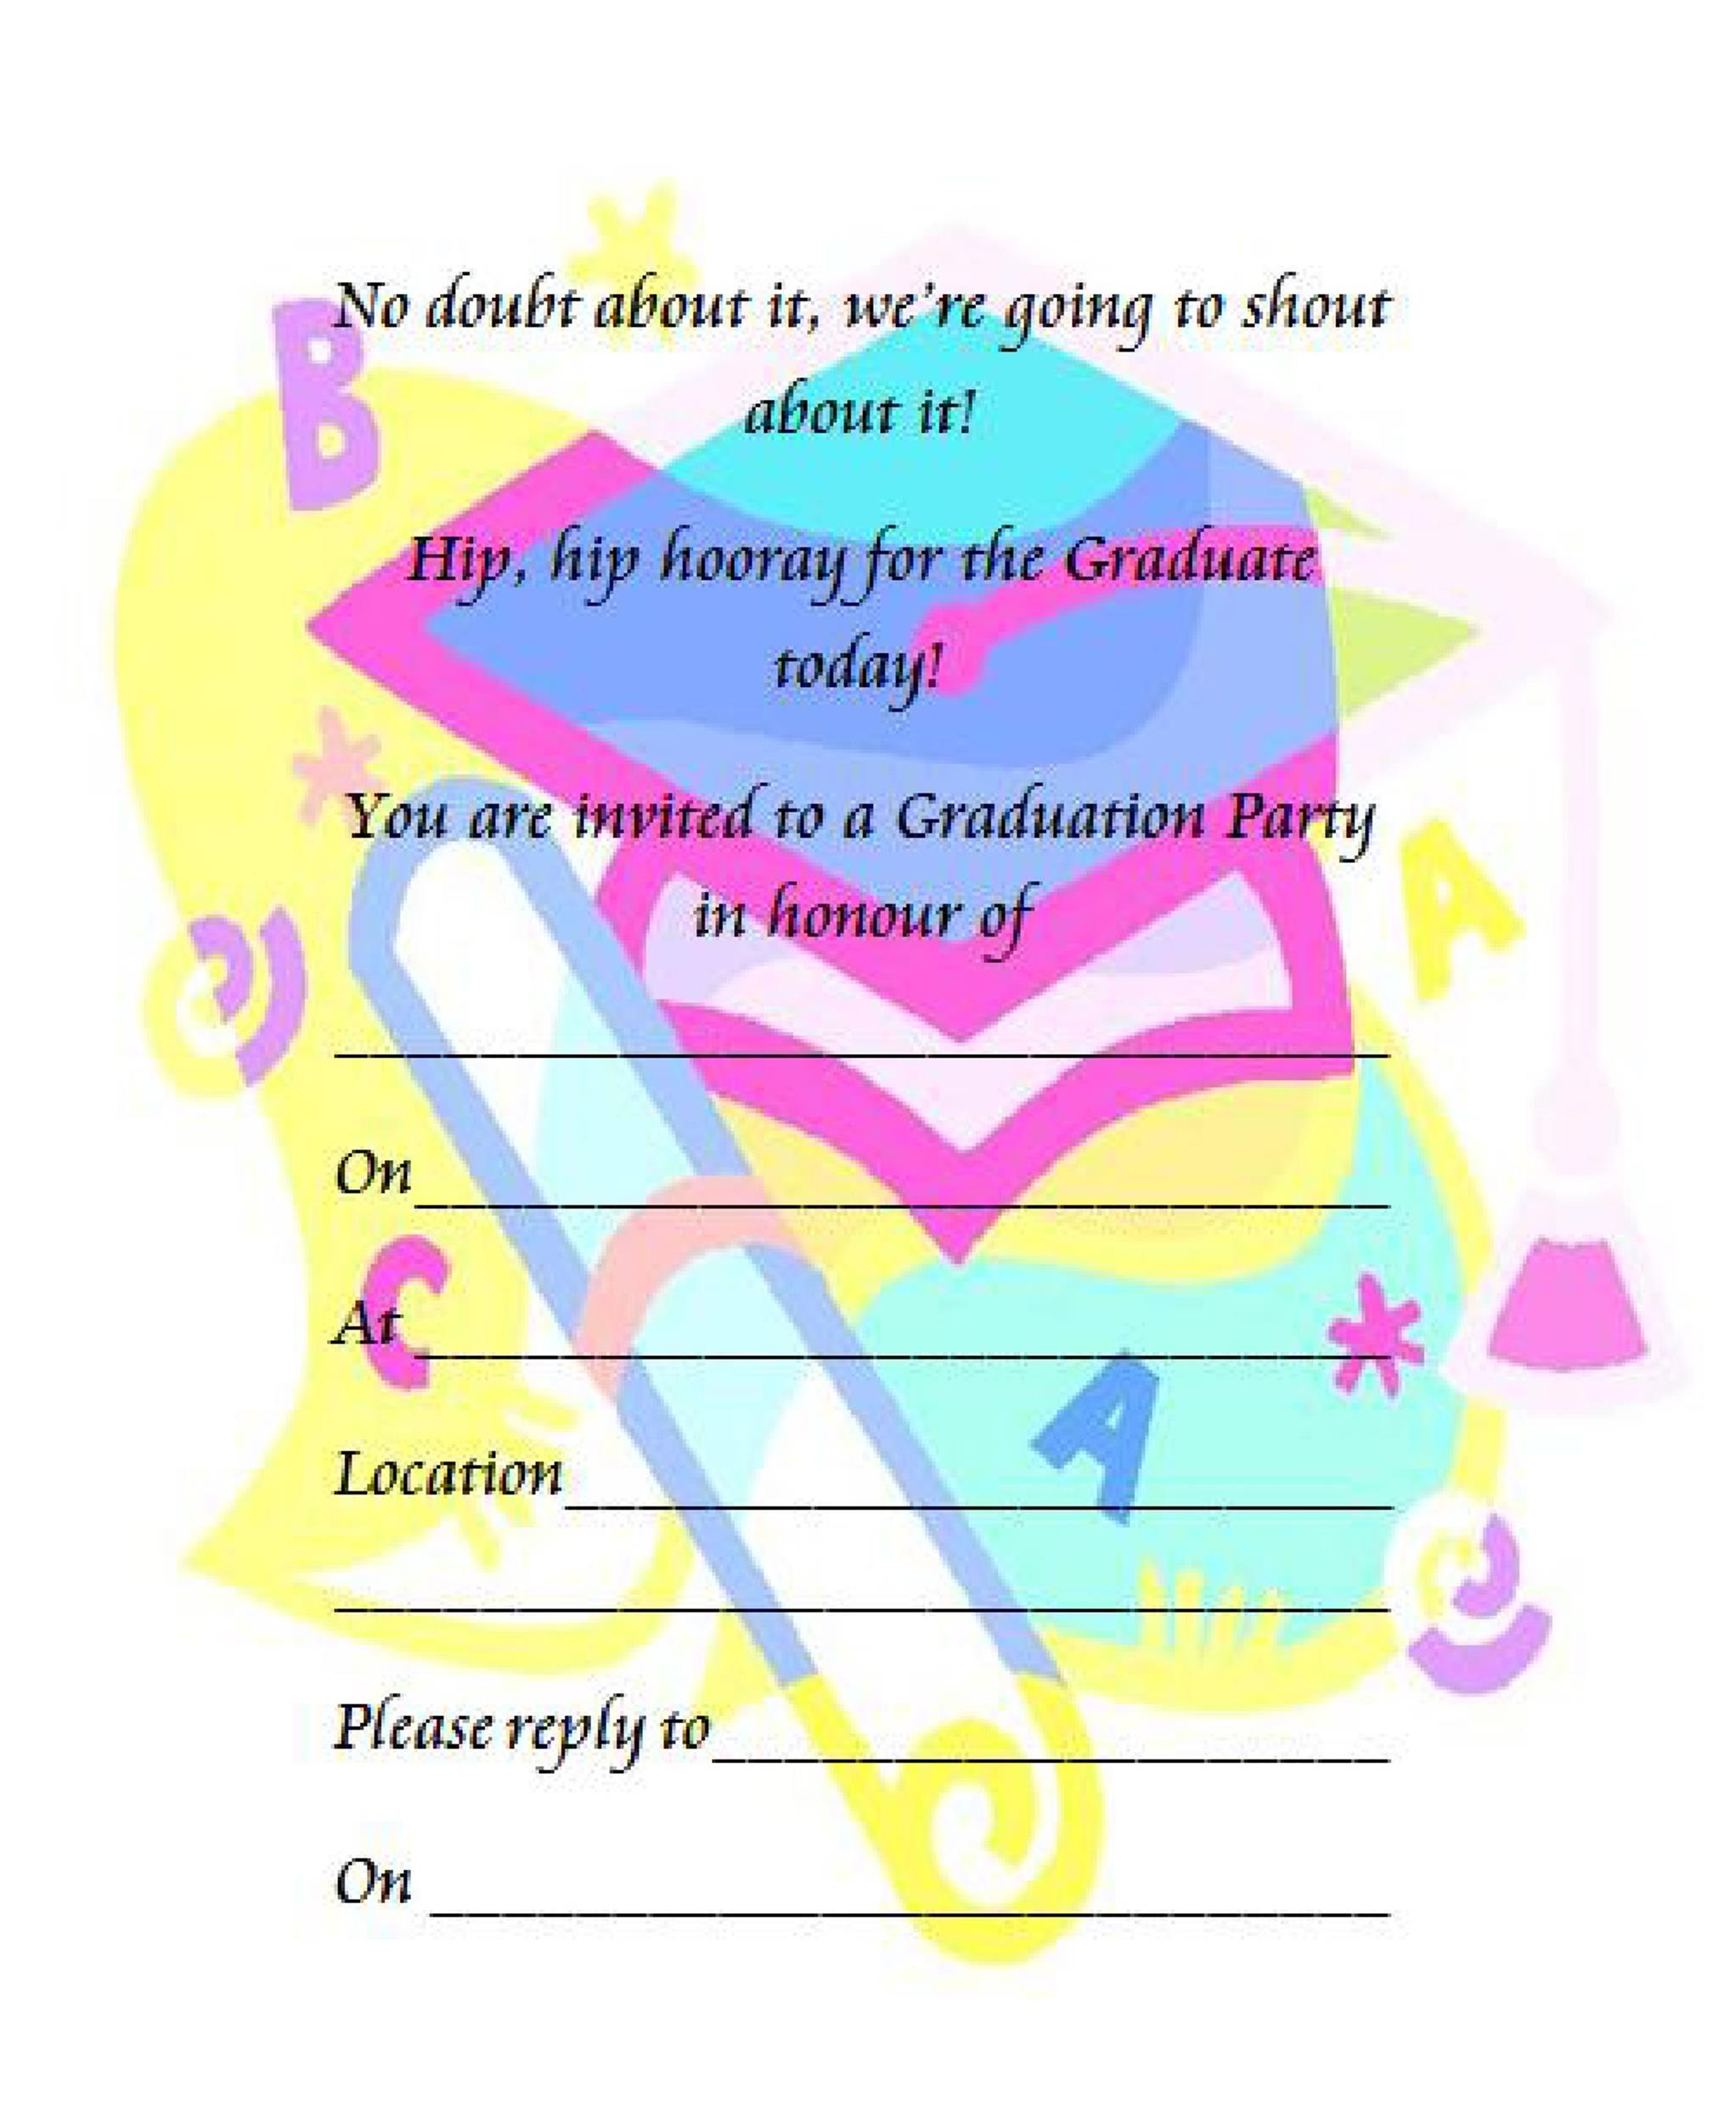 FREE Graduation Invitation Templates Template Lab - Free templates for graduation party invites